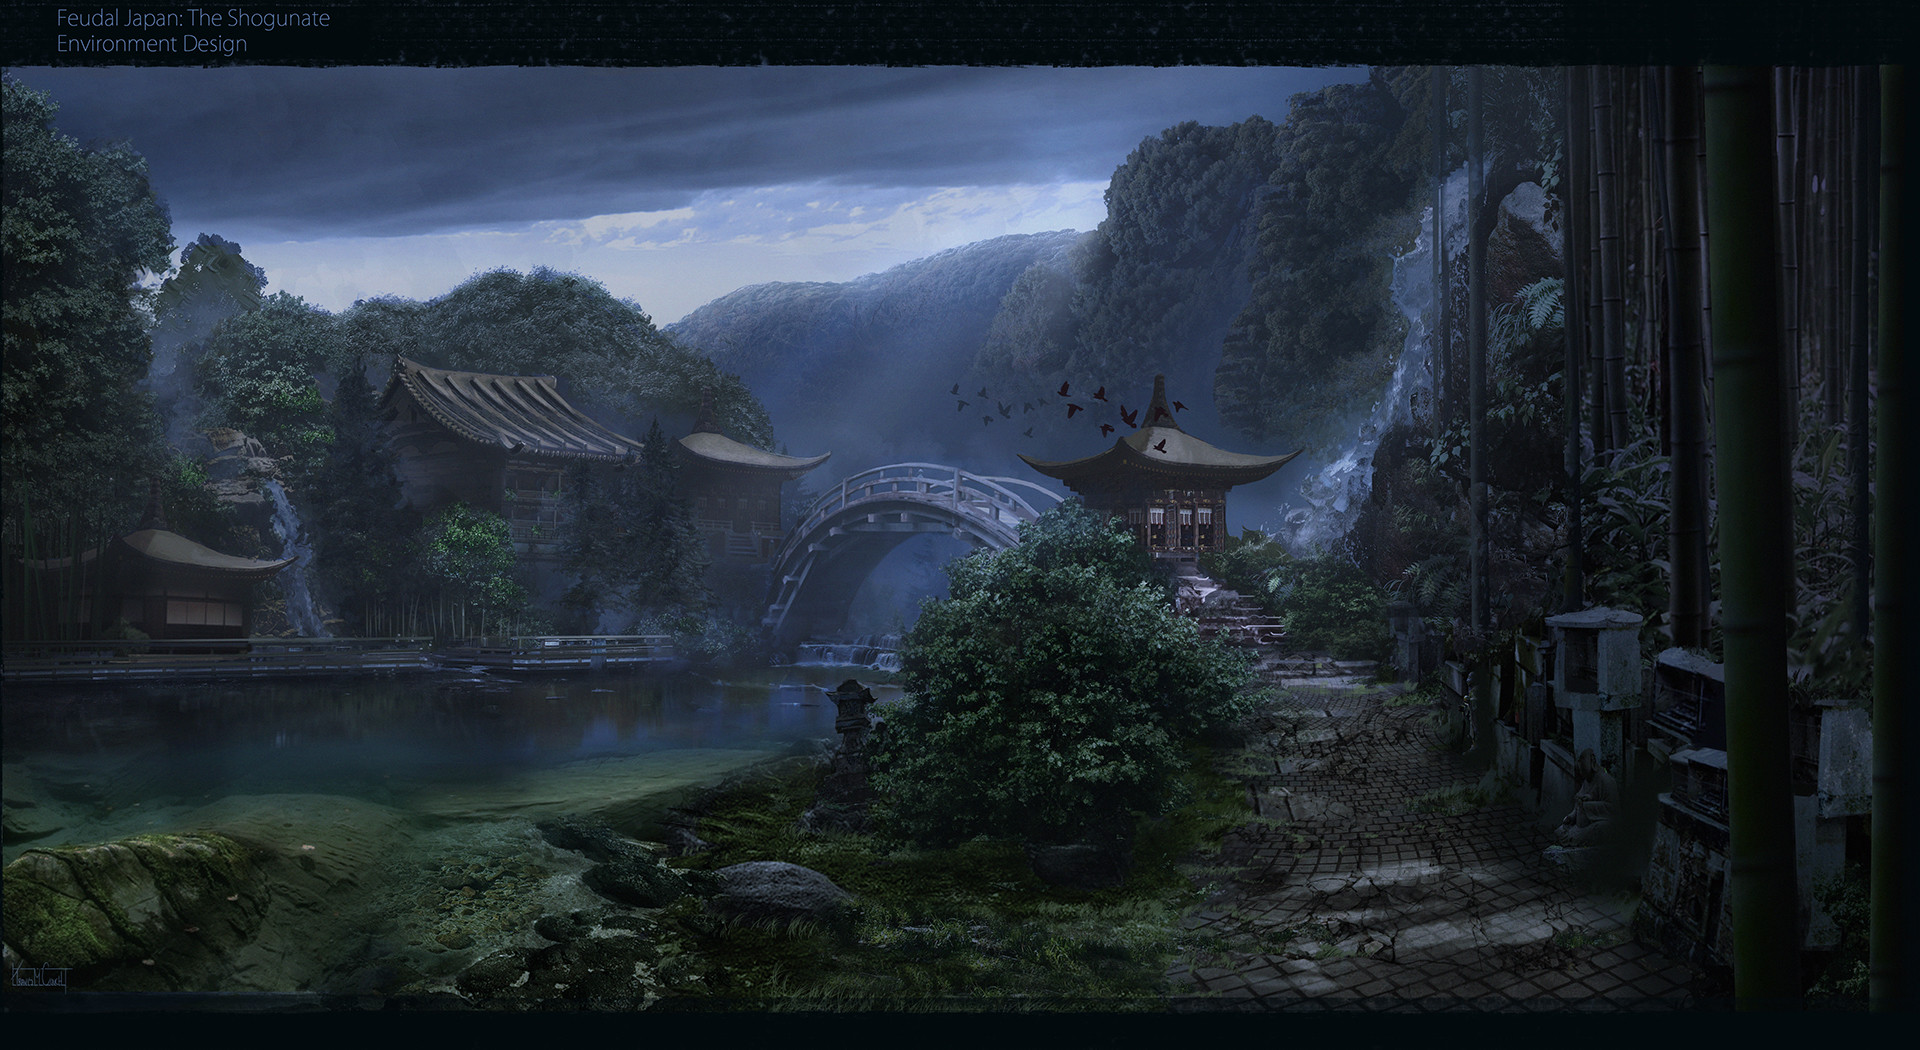 Artstation - Village Feudal Japan Shogunate